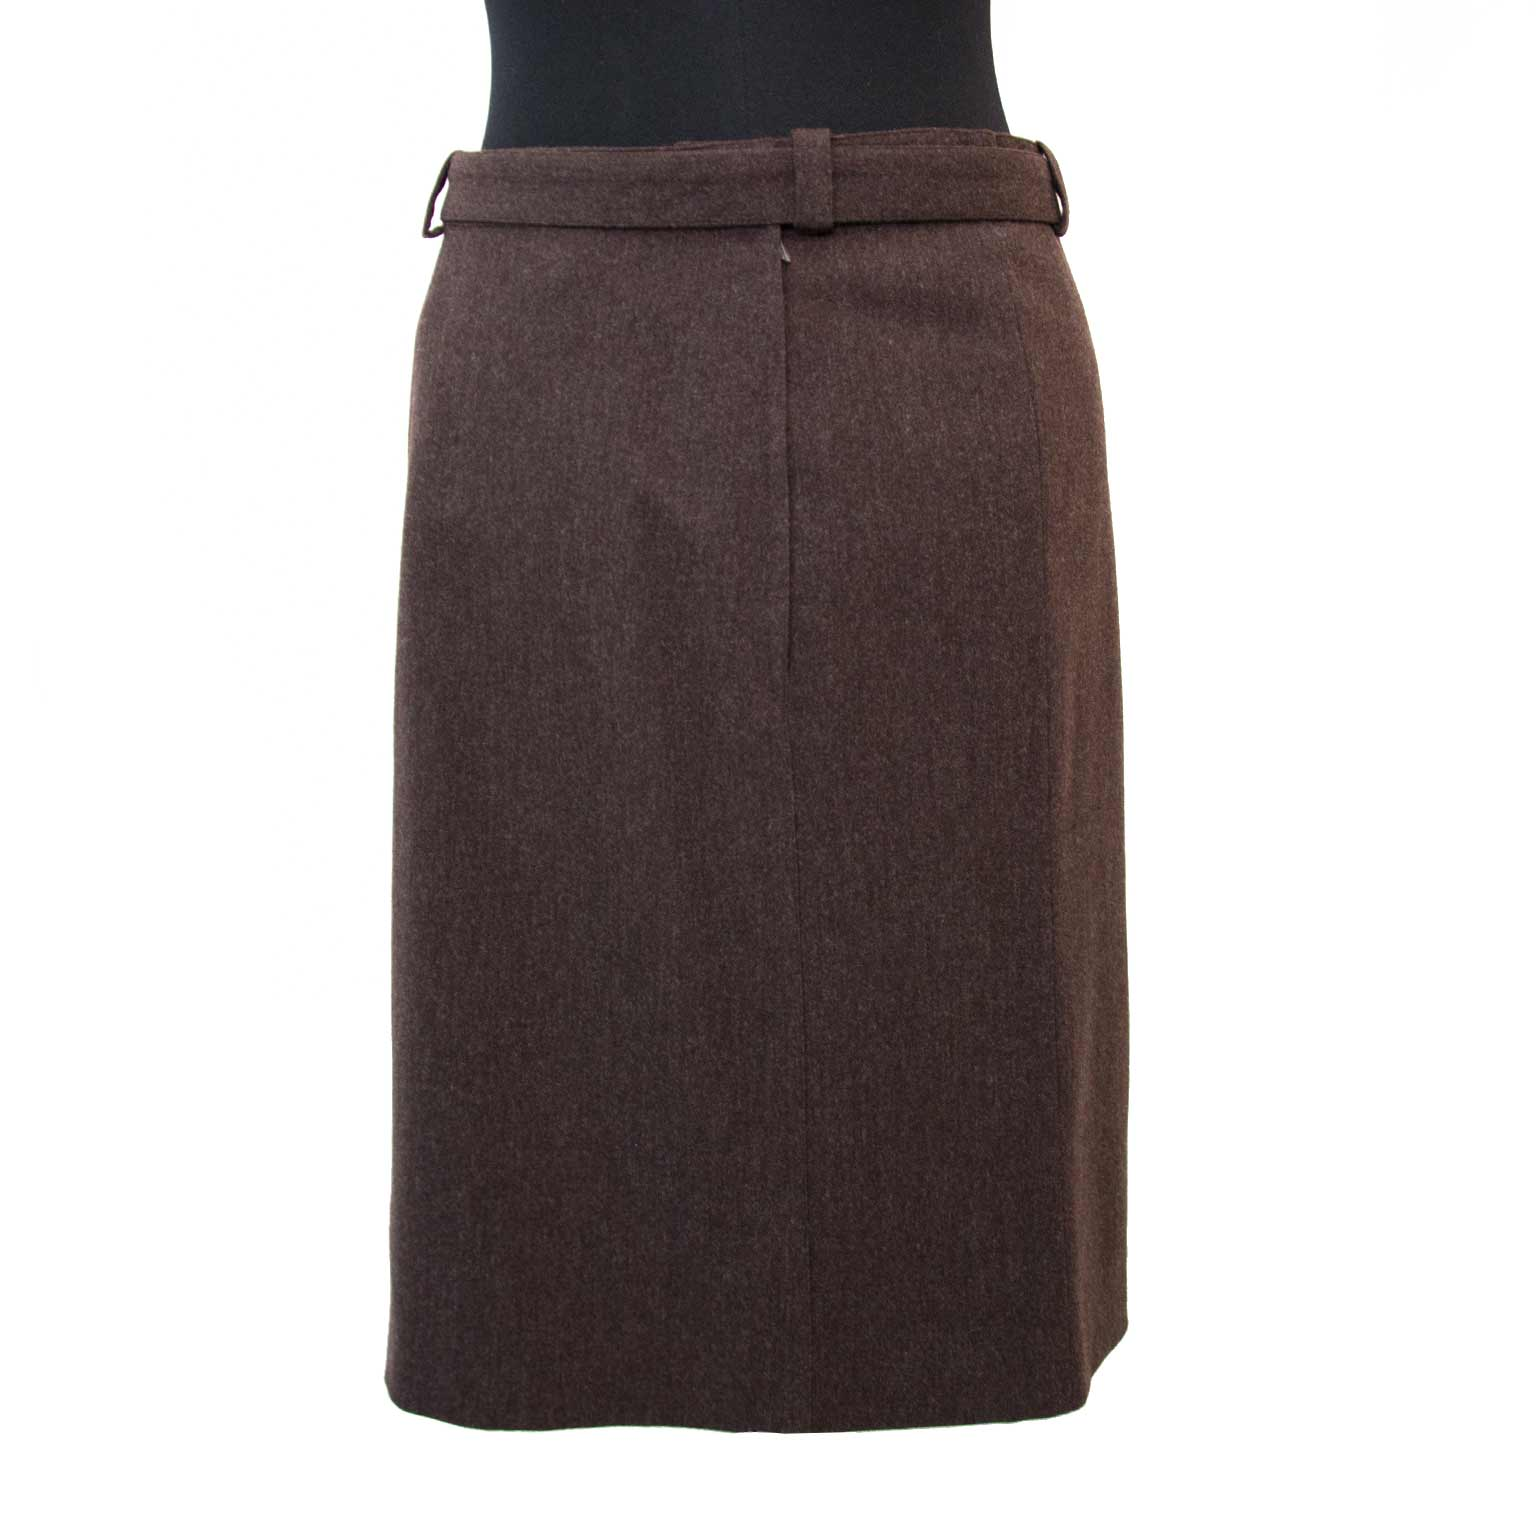 Shop safe online aan de beste prijs Chanel Brown Wool Skirt